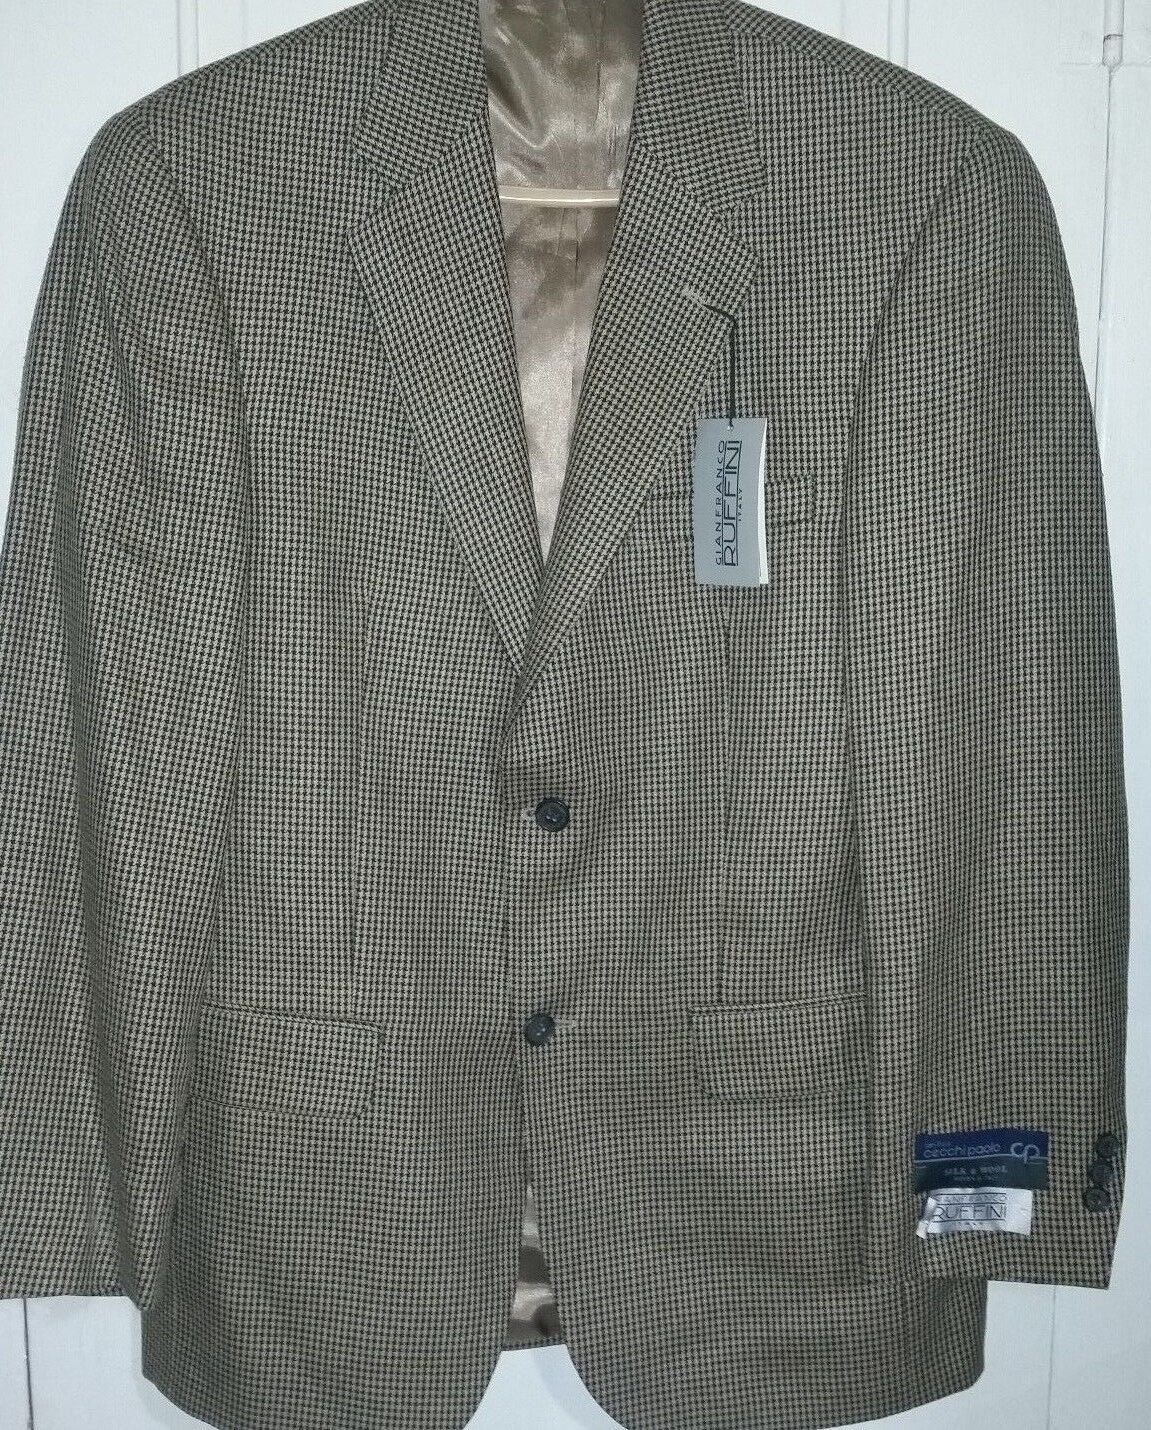 NEW w TAGS Gianfranco Ruffini  Silk Wool Blazer Sport Coat  Herren Größe 38 R